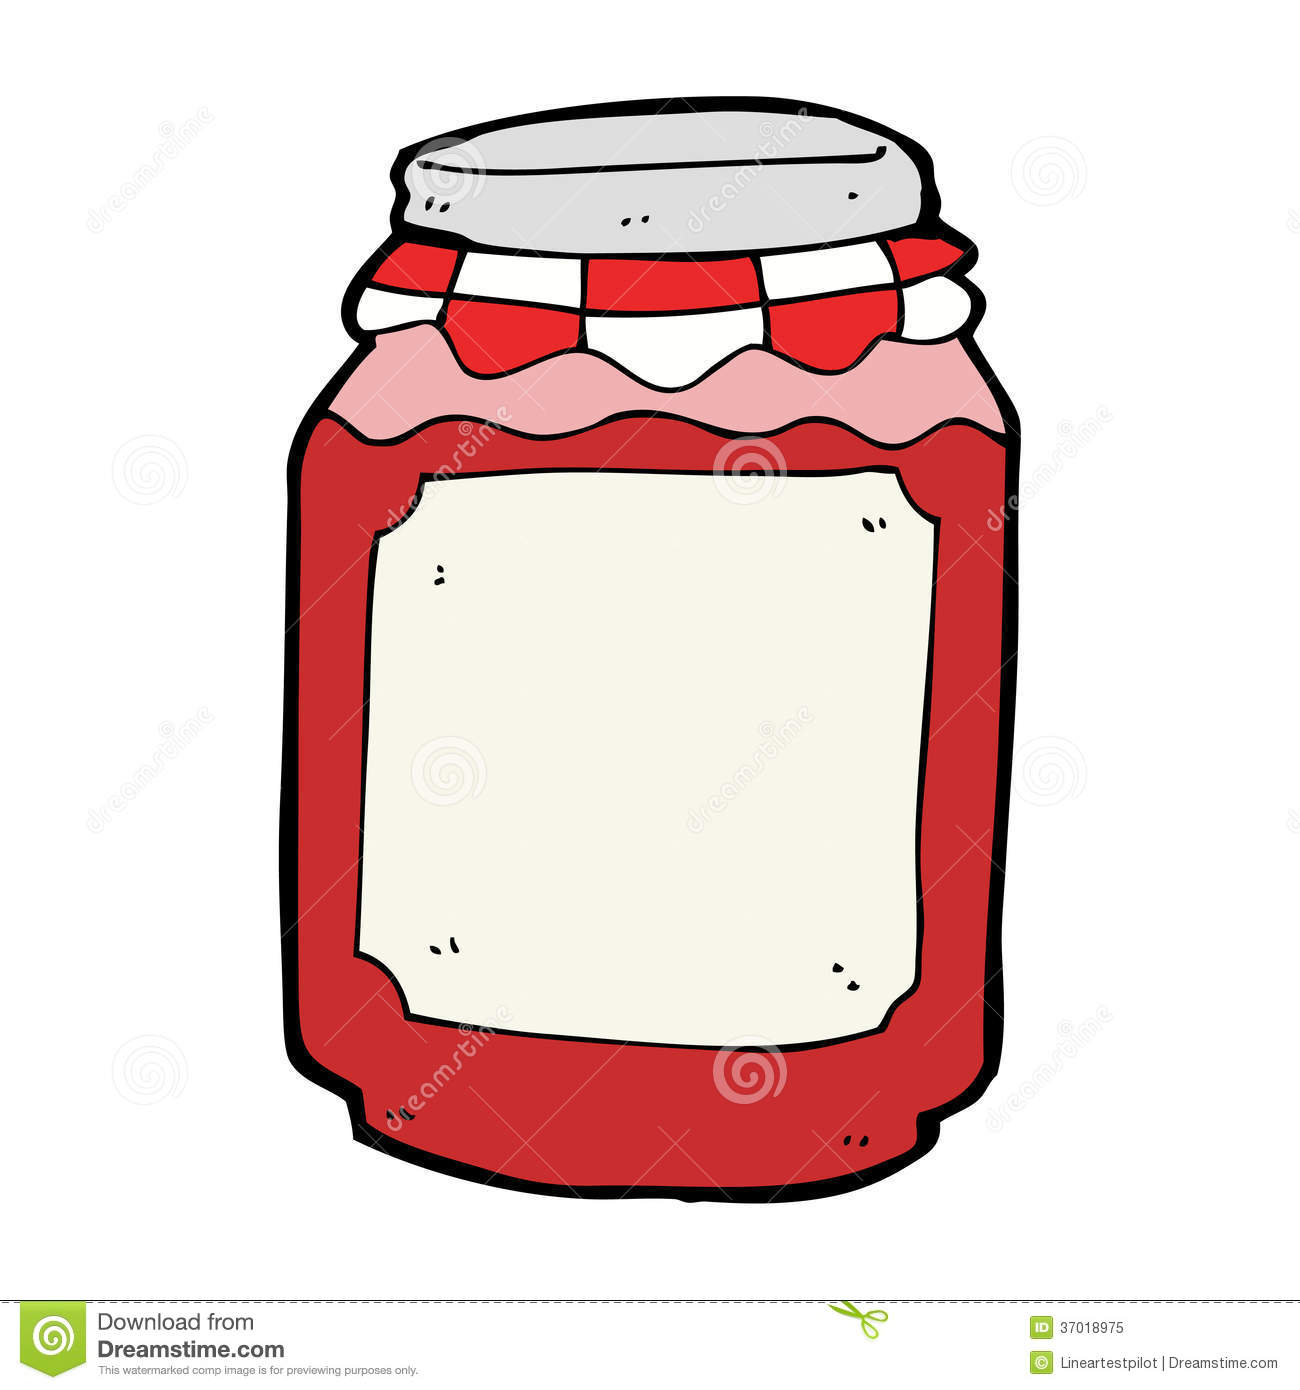 Cartoon Jar Of Jam Stock Vector Illustration Of Quirky